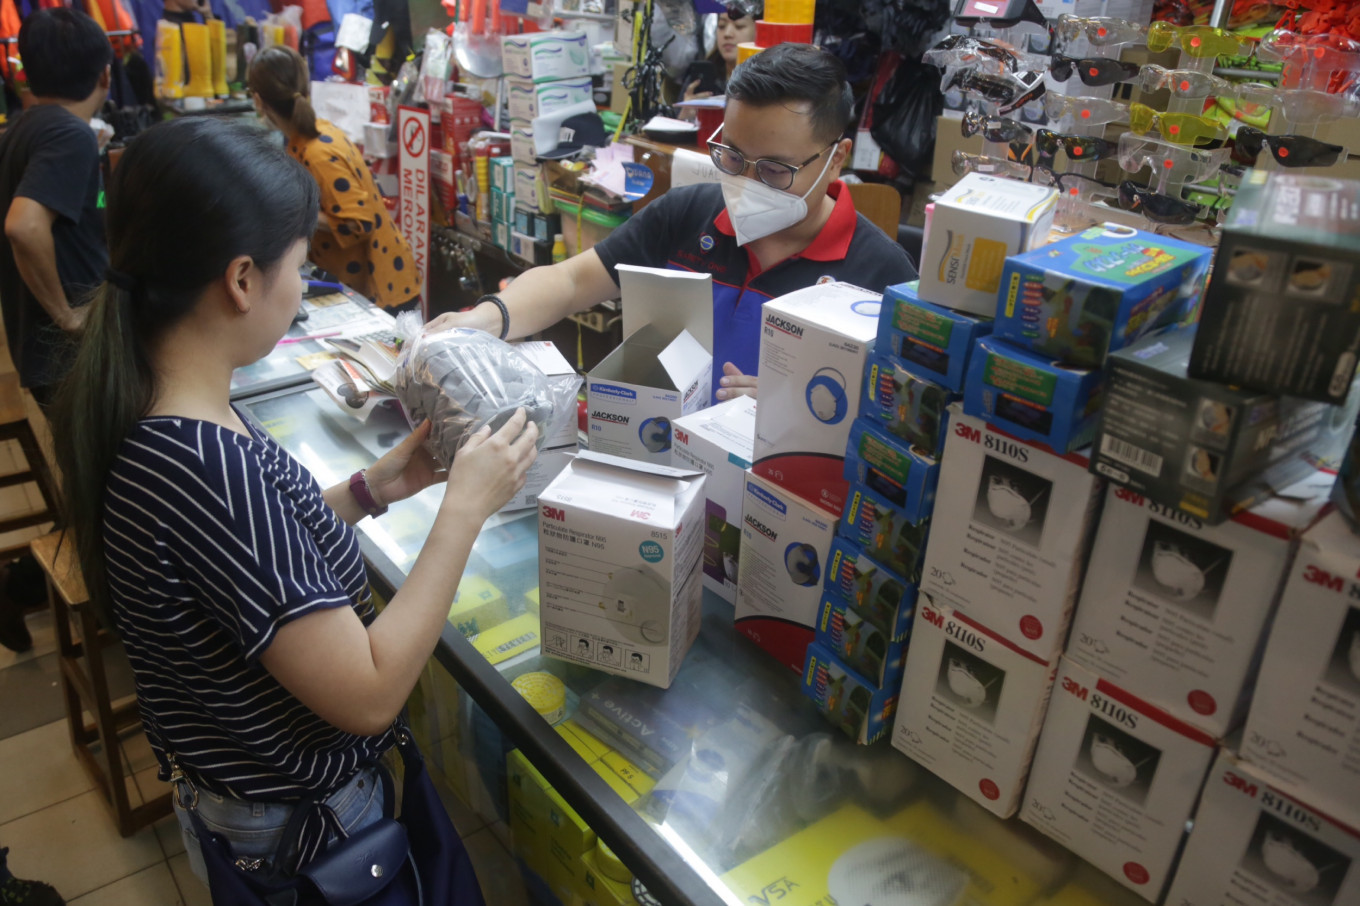 Police seize 350 boxes of face masks during raid on suspected hoarder in West Jakarta